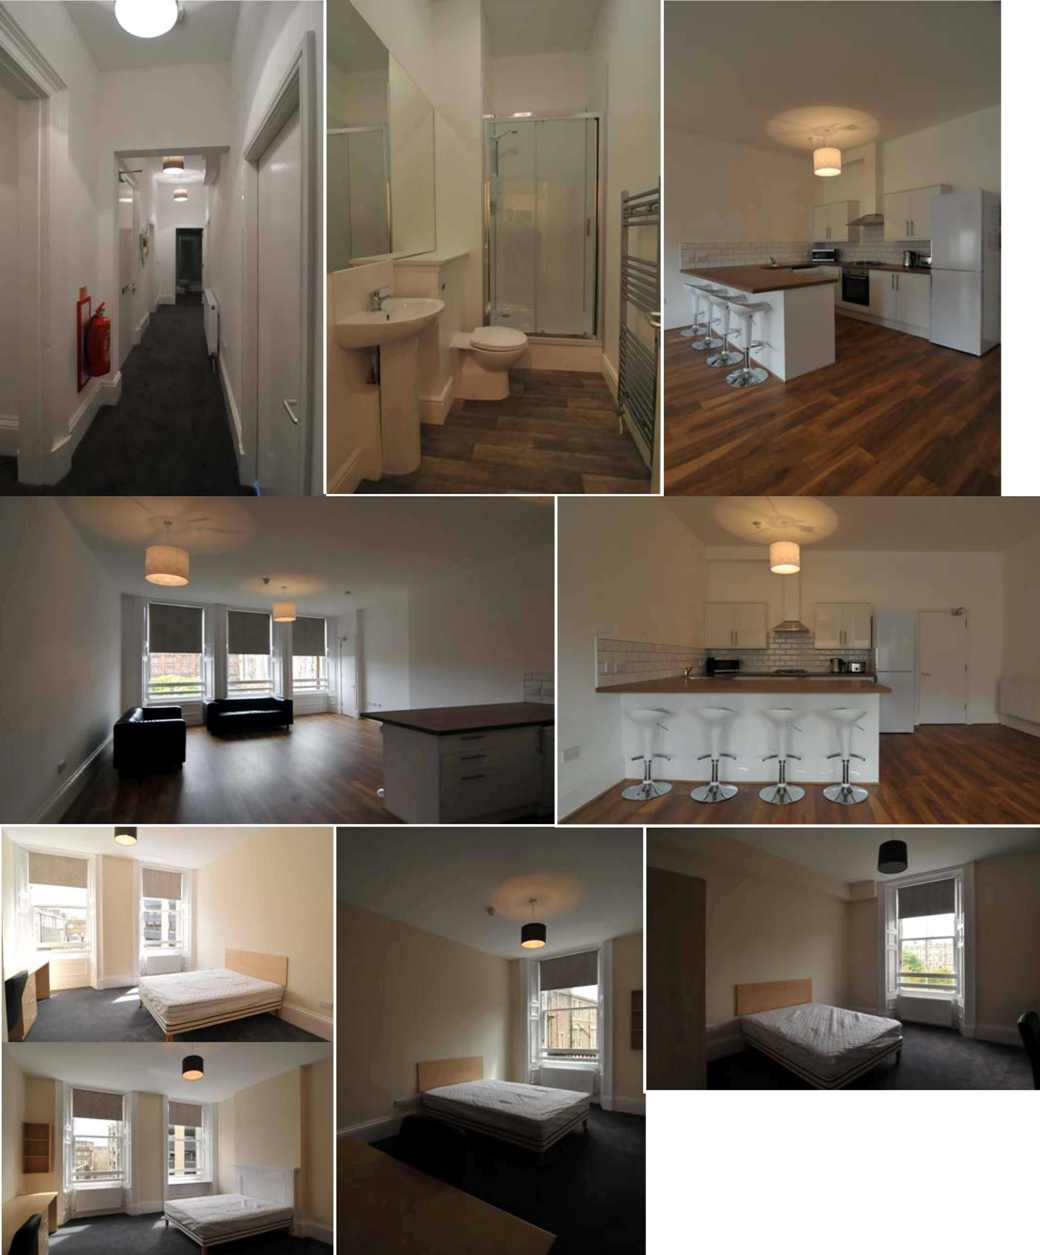 1 Bedroom Apartment For Rent: 4 Bedroom Student Flats For Rent In Dundee